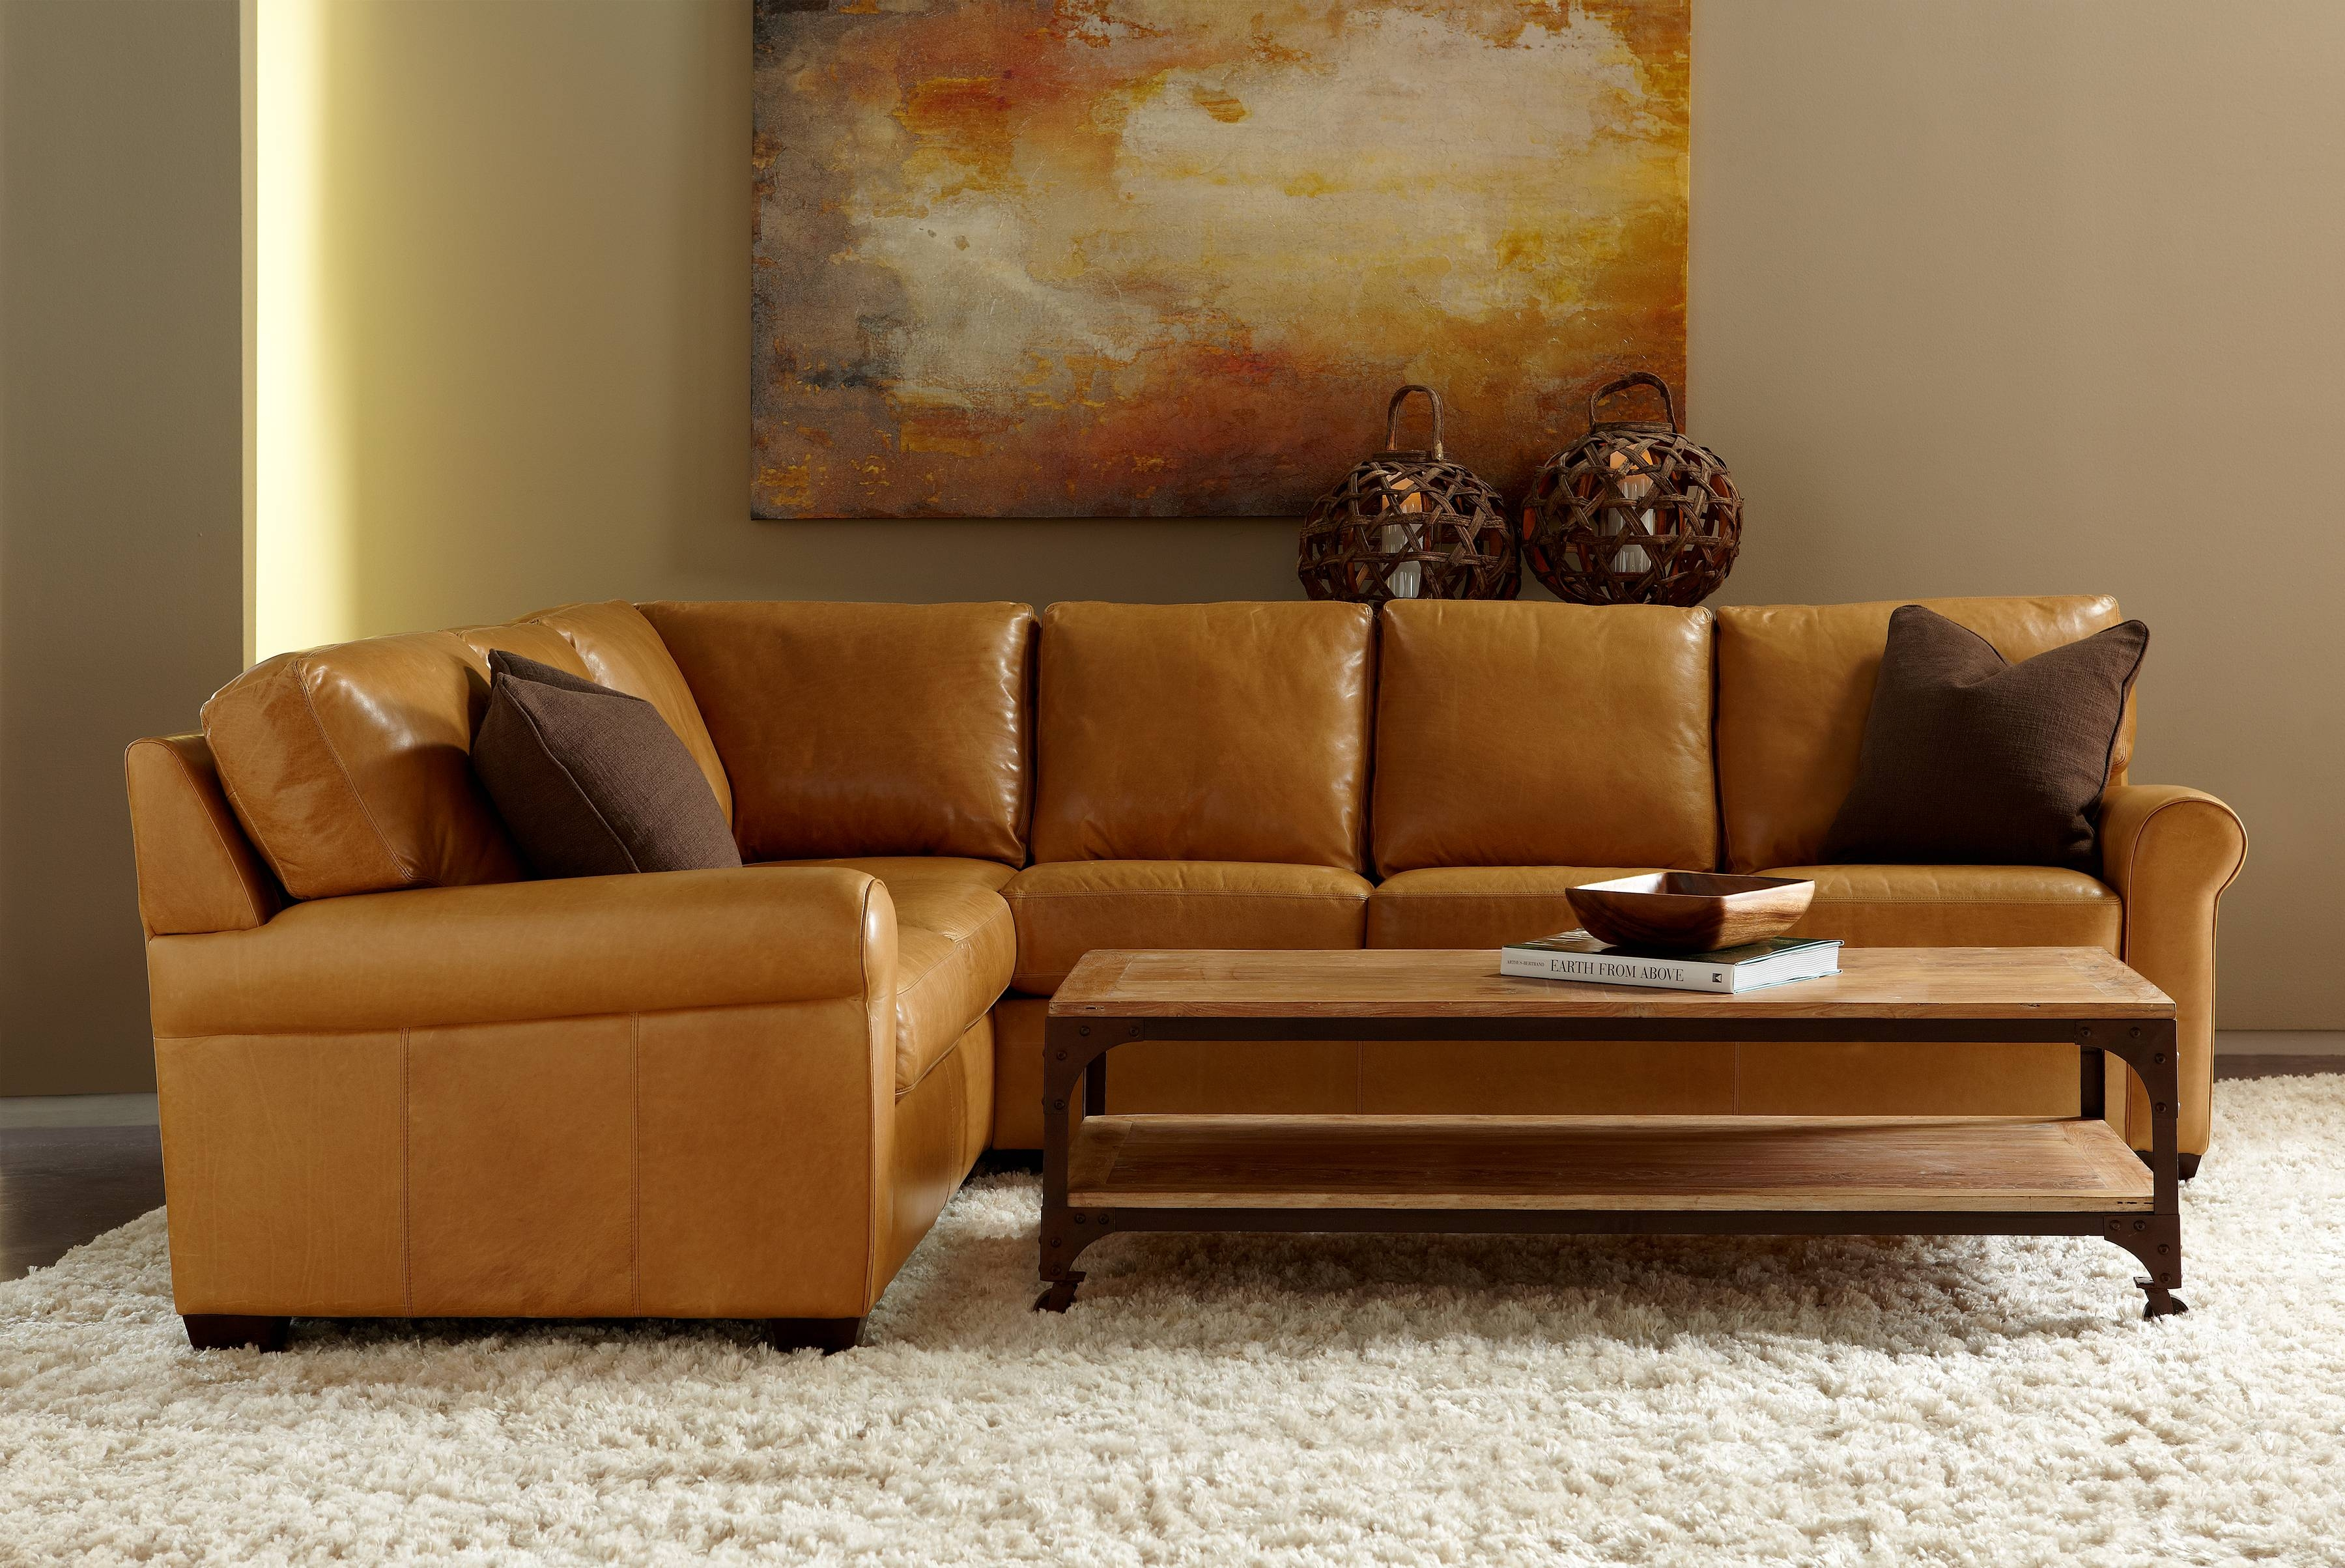 Sectional Sofas - Elegance And Style Tailored Just For Youand pertaining to Leather L Shaped Sectional Sofas (Image 27 of 30)